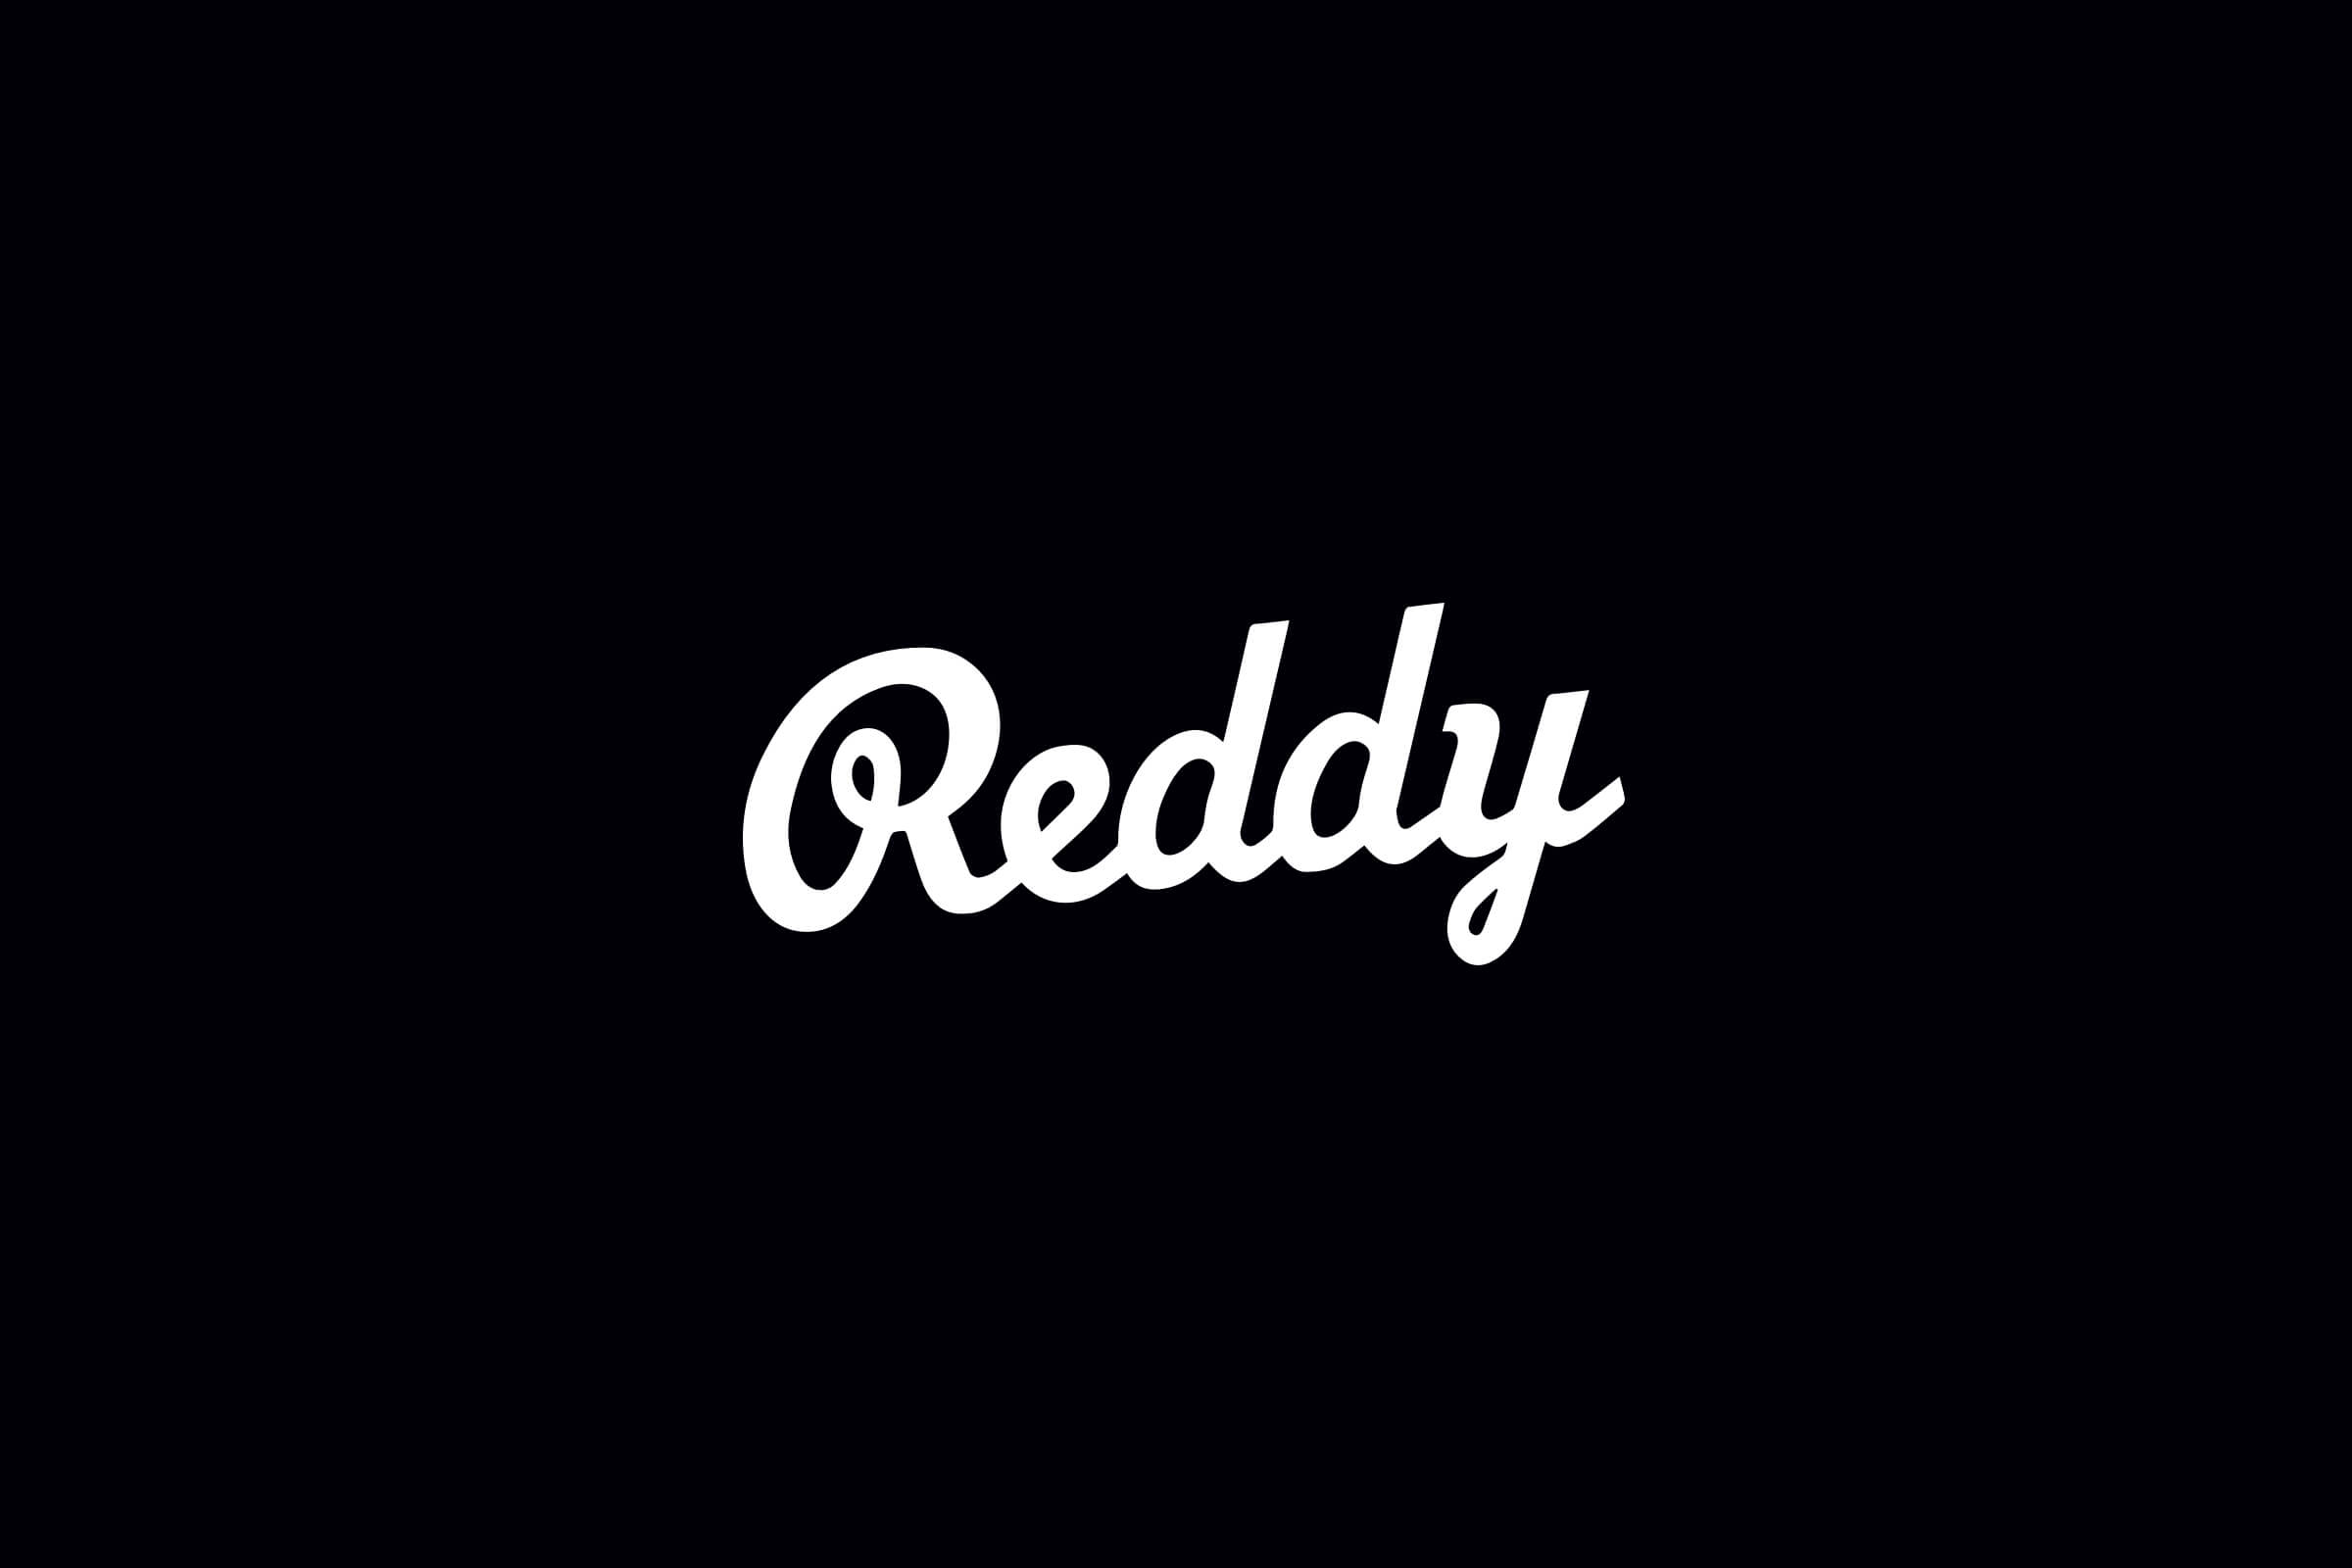 reddy-black